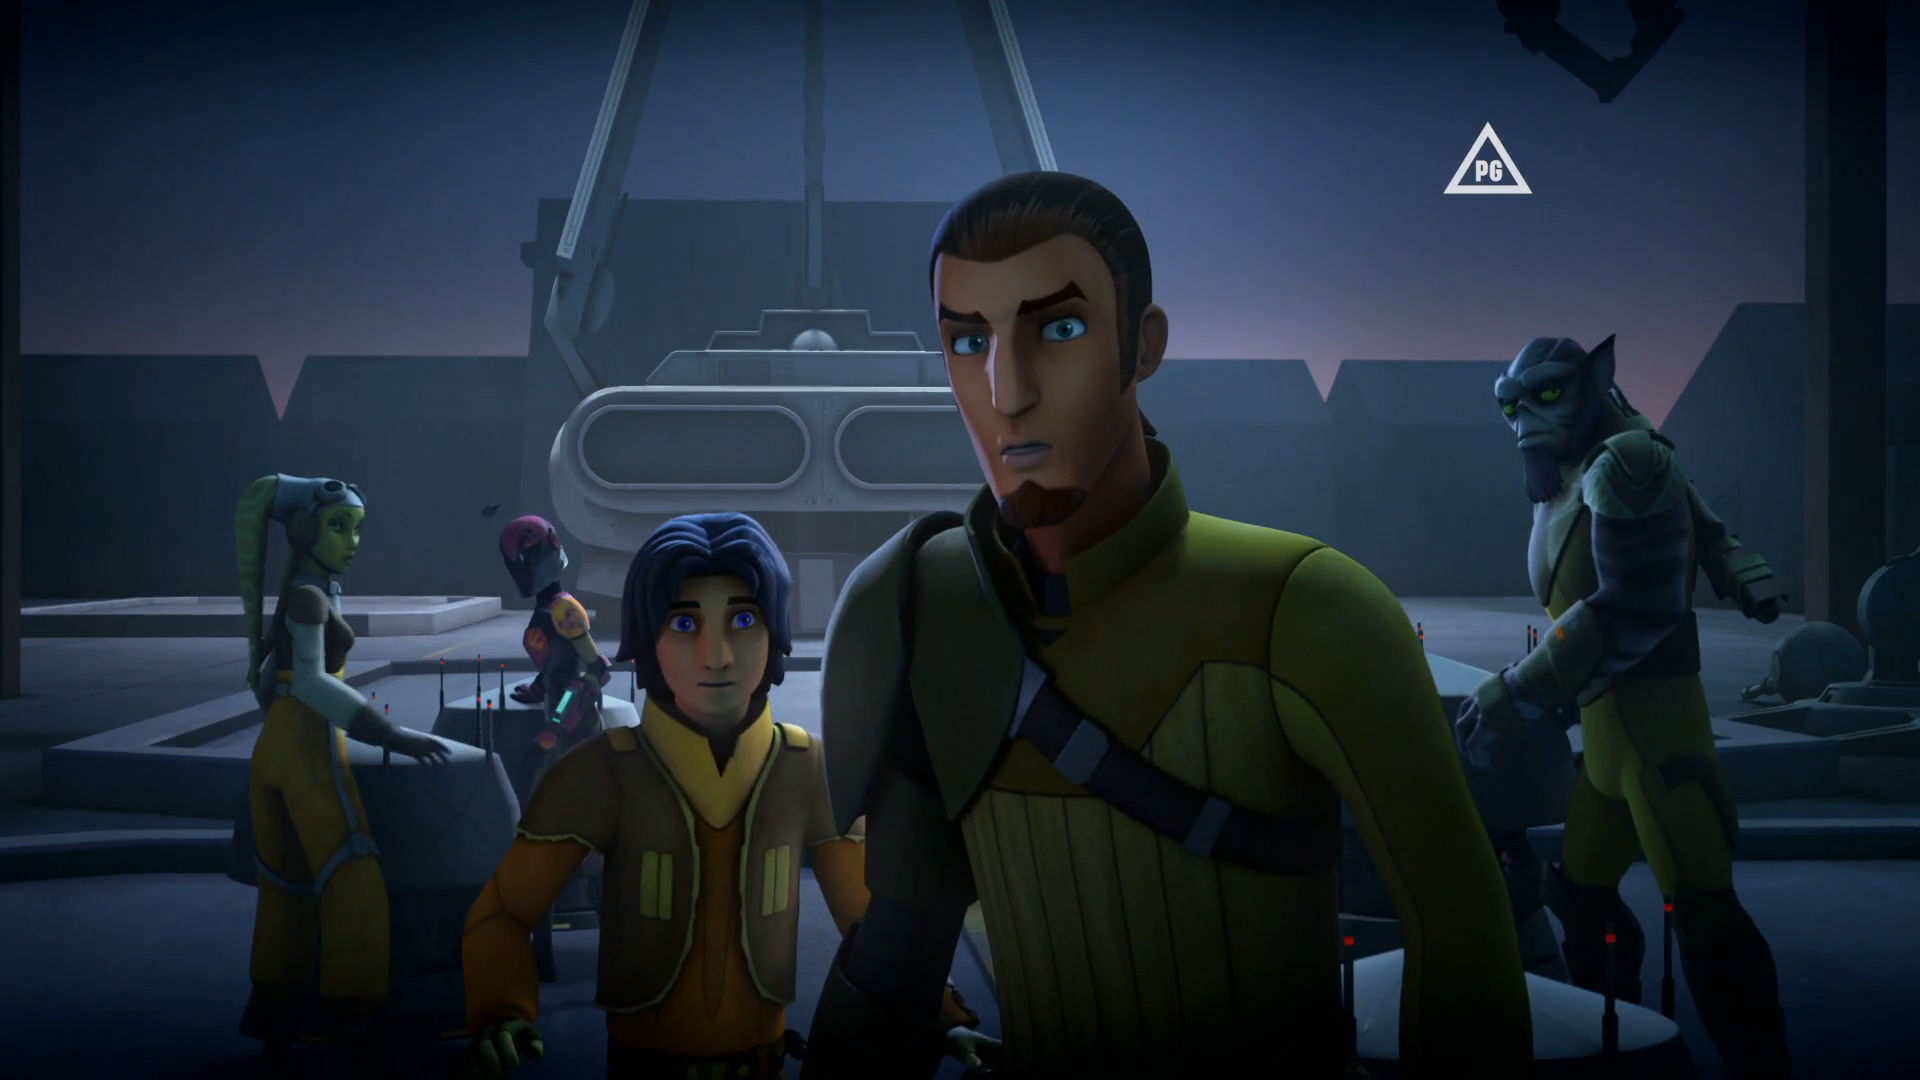 Star Wars Rebels Season 2 Teaser